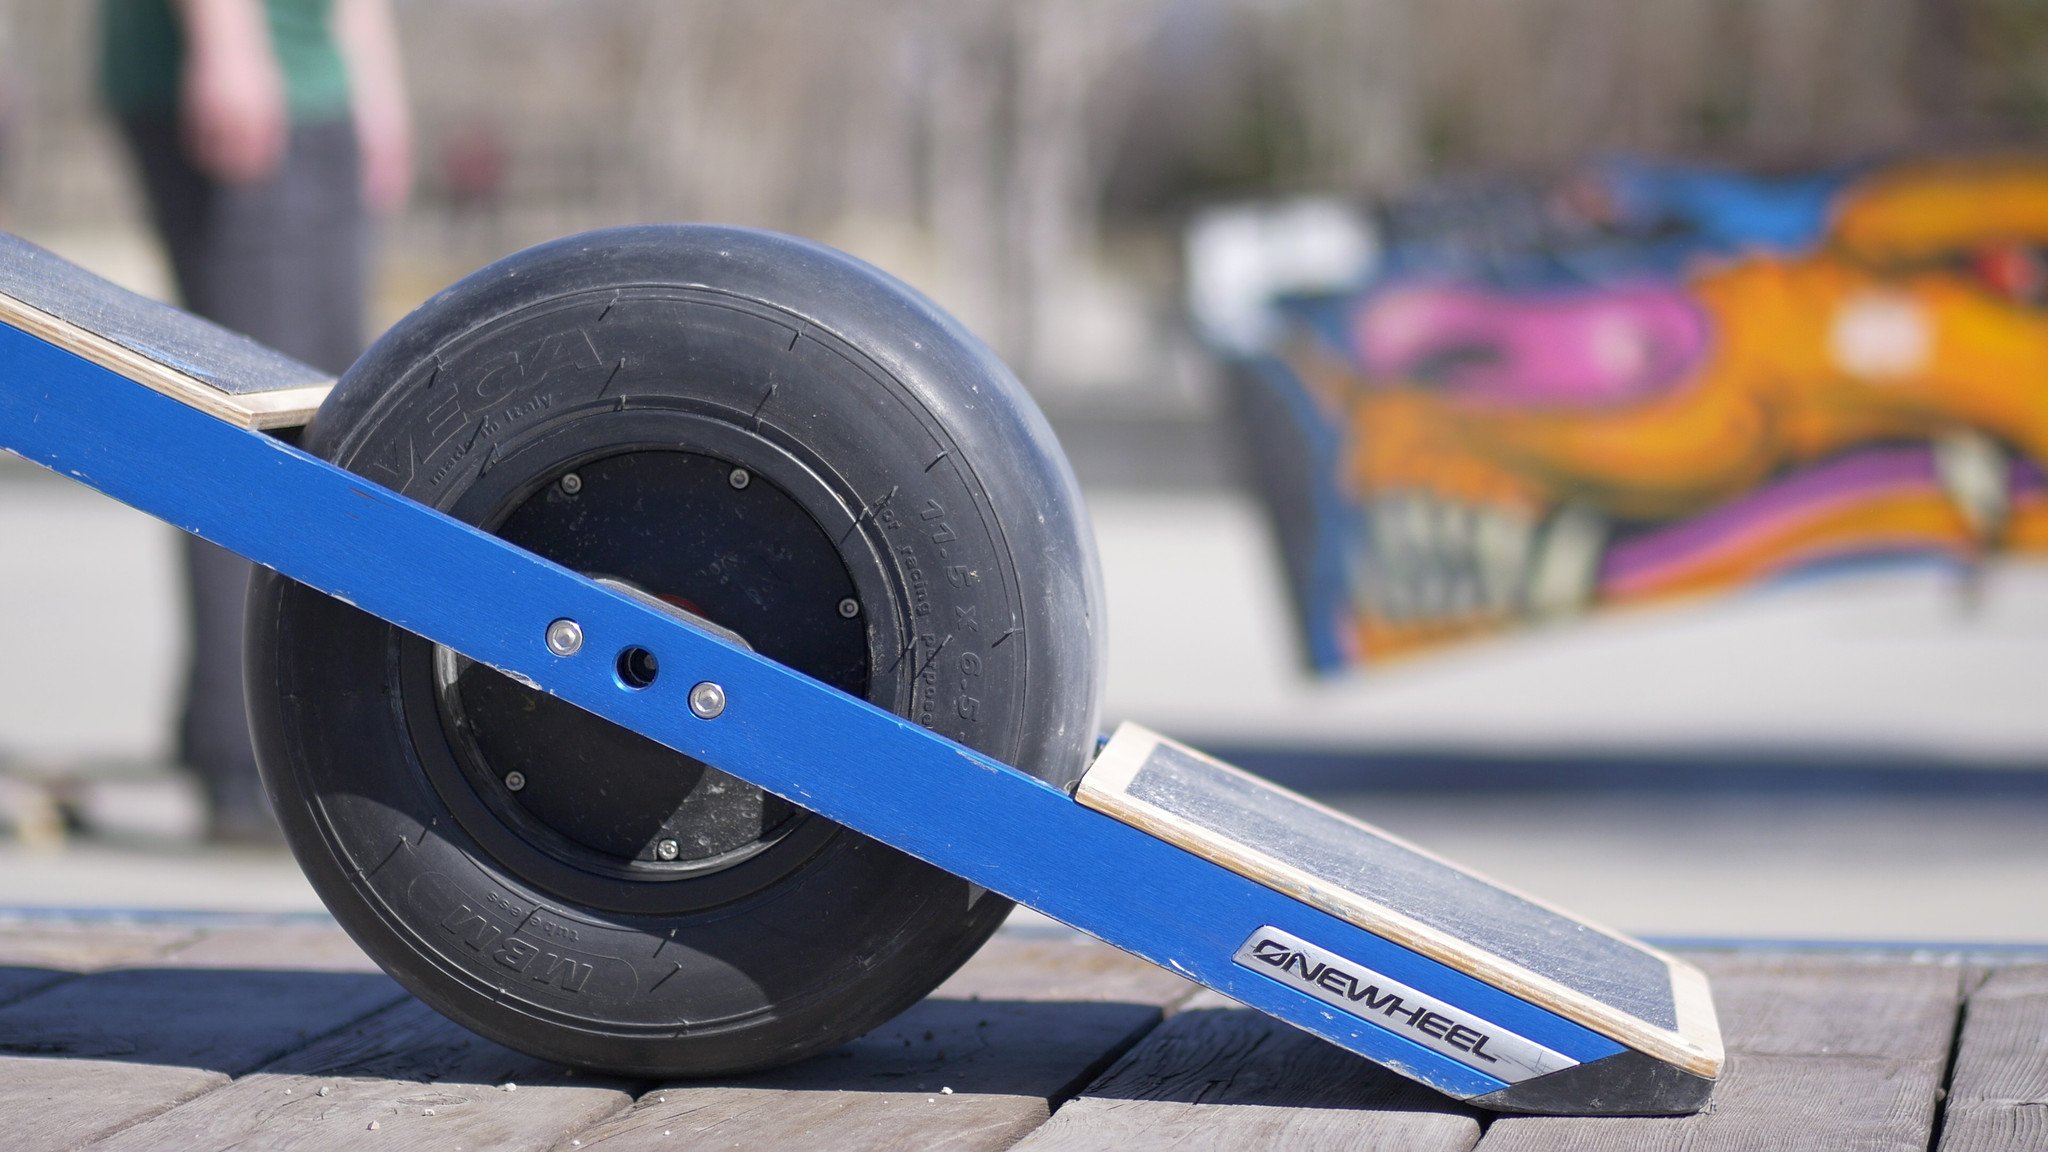 Car Wallpaper Download Sites The Magical Onewheel Electric Skateboard Now Has An